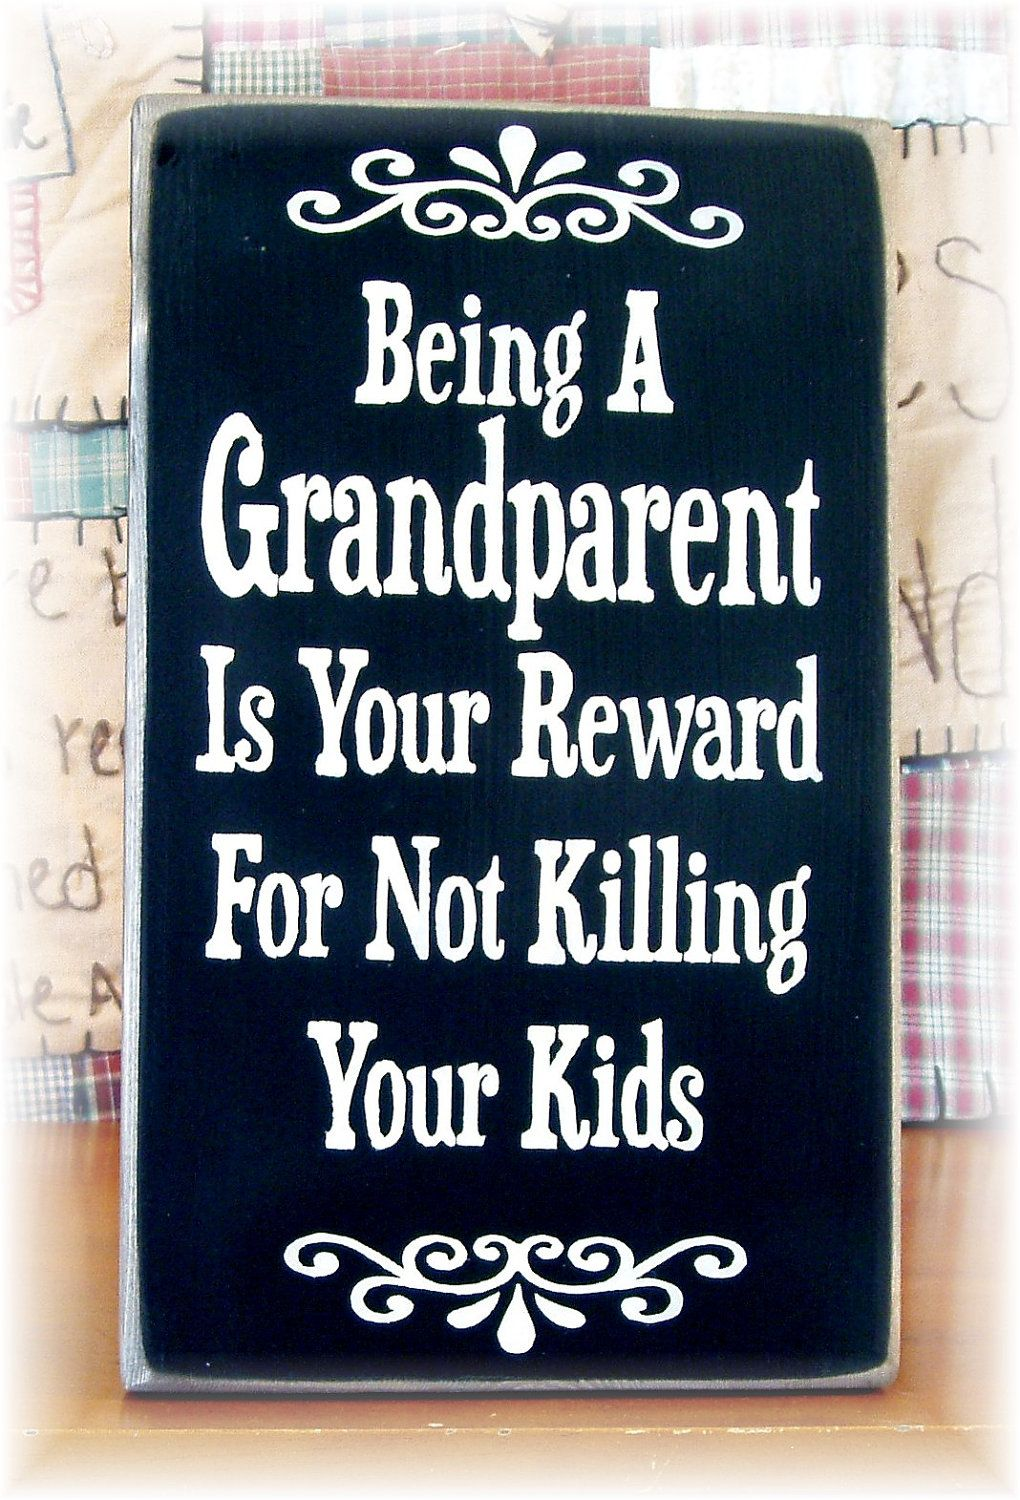 Being a grandparent is your reward for not killing your